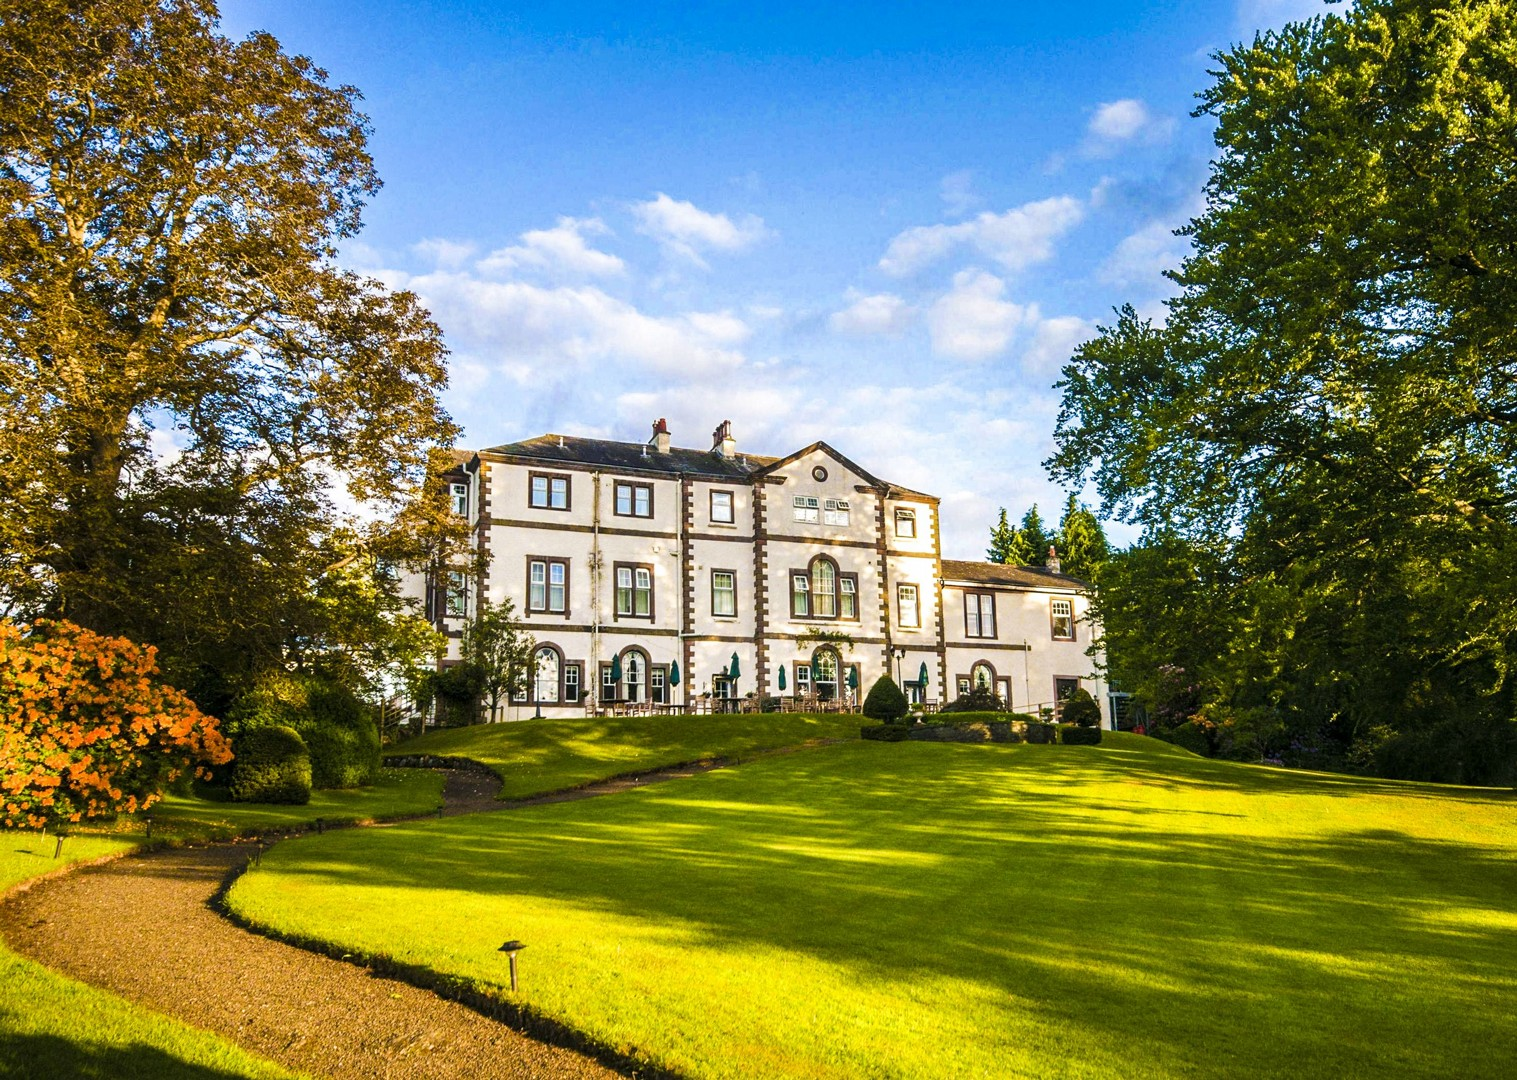 derwent-bank-cycling-tour-high-quality-manor-accommodation-saddle-skedaddle.jpg - UK - Lake District - Derwent Water - Guided Leisure Cycling Holiday - Leisure Cycling